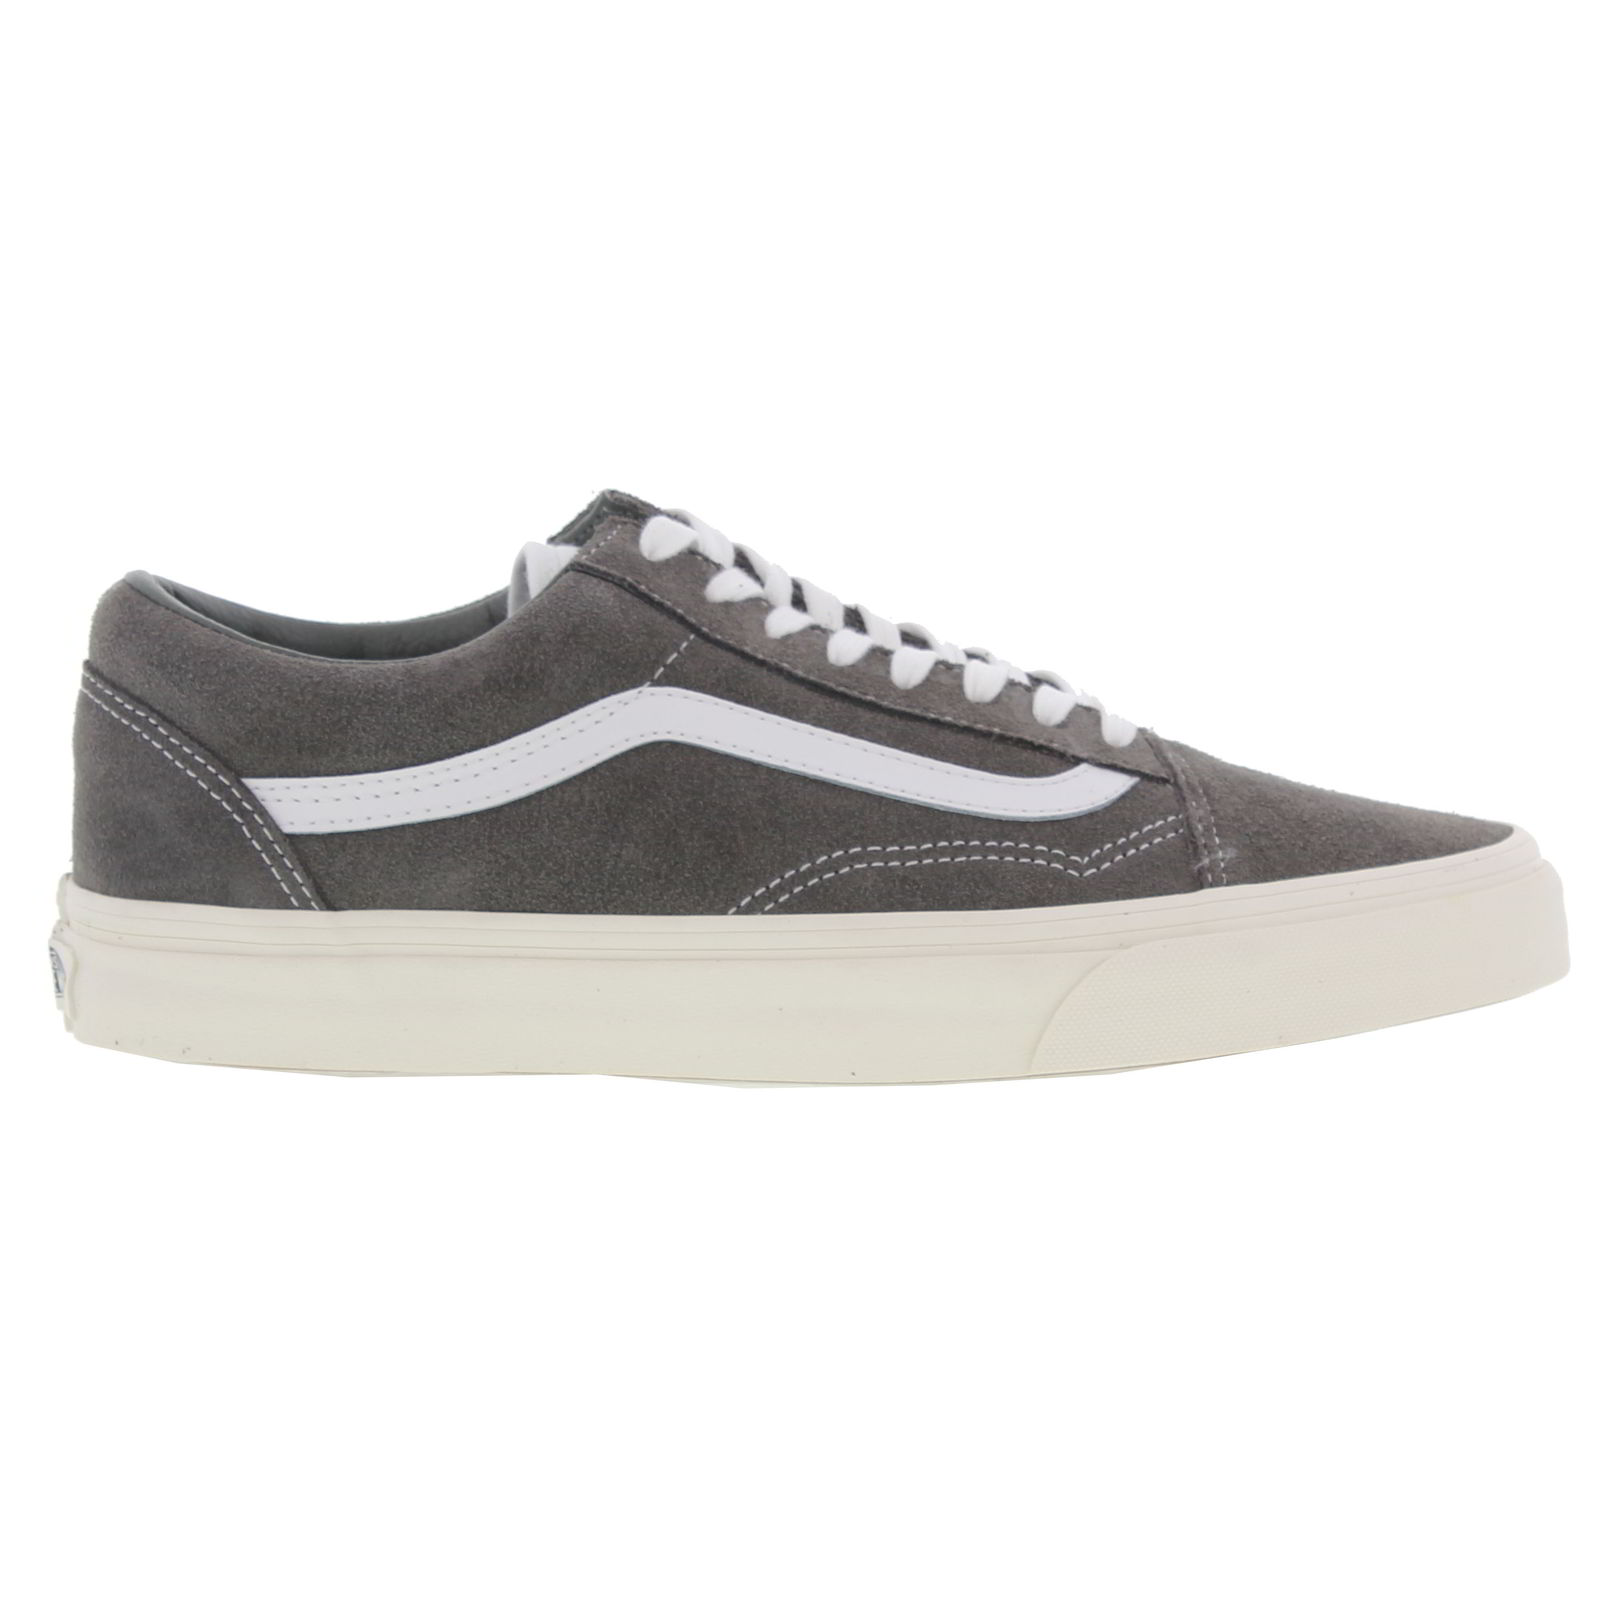 e4041acbae Details about Vans Old Skool Mens Retro Sport Grey Suede Trainers Size 8-11